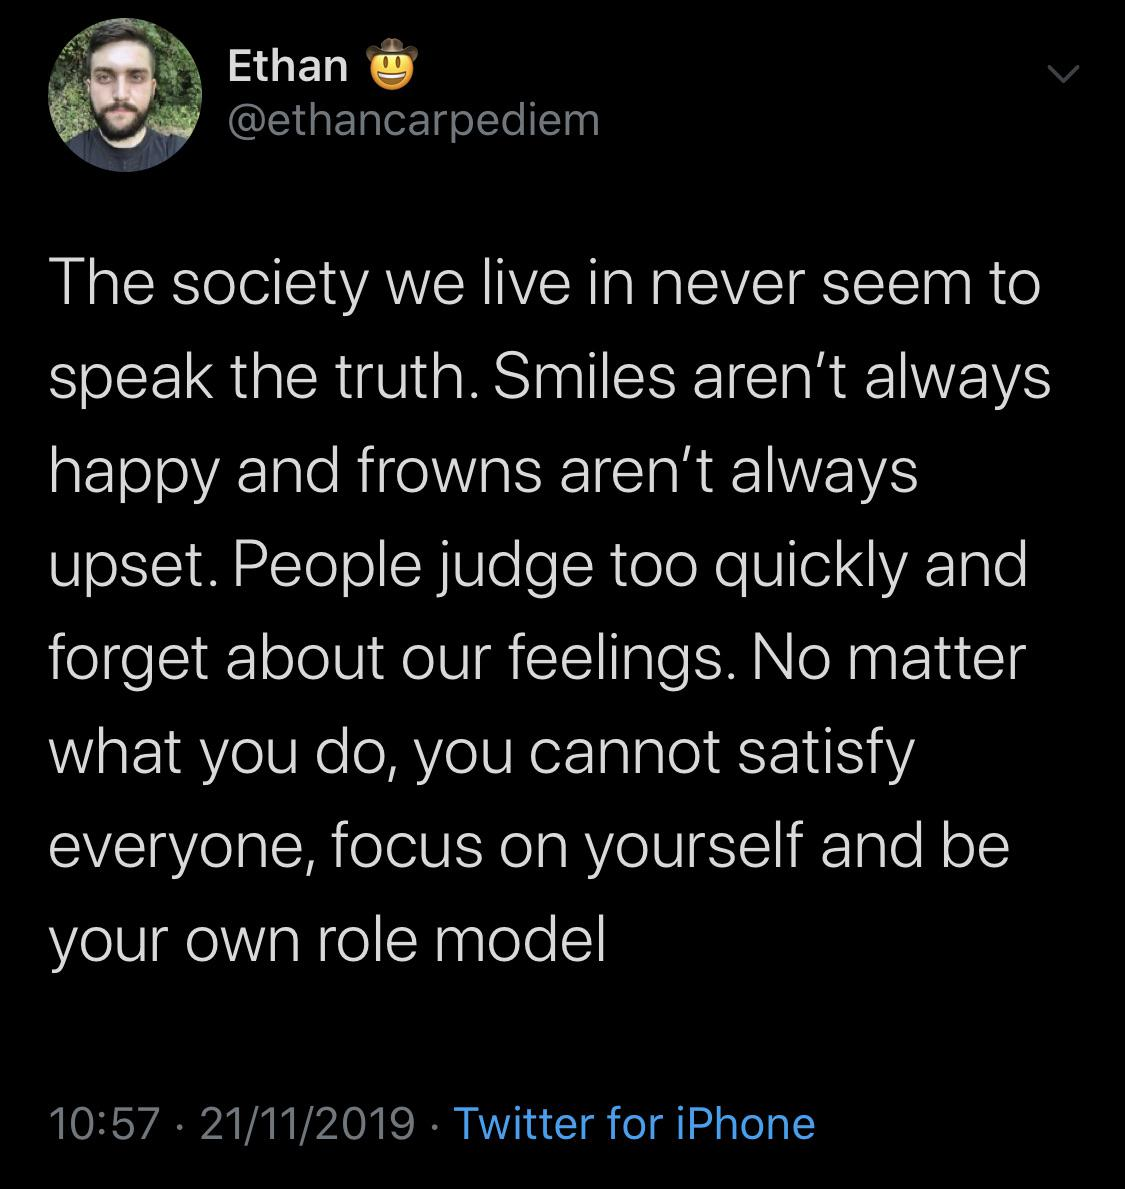 [Image] Be your own role model